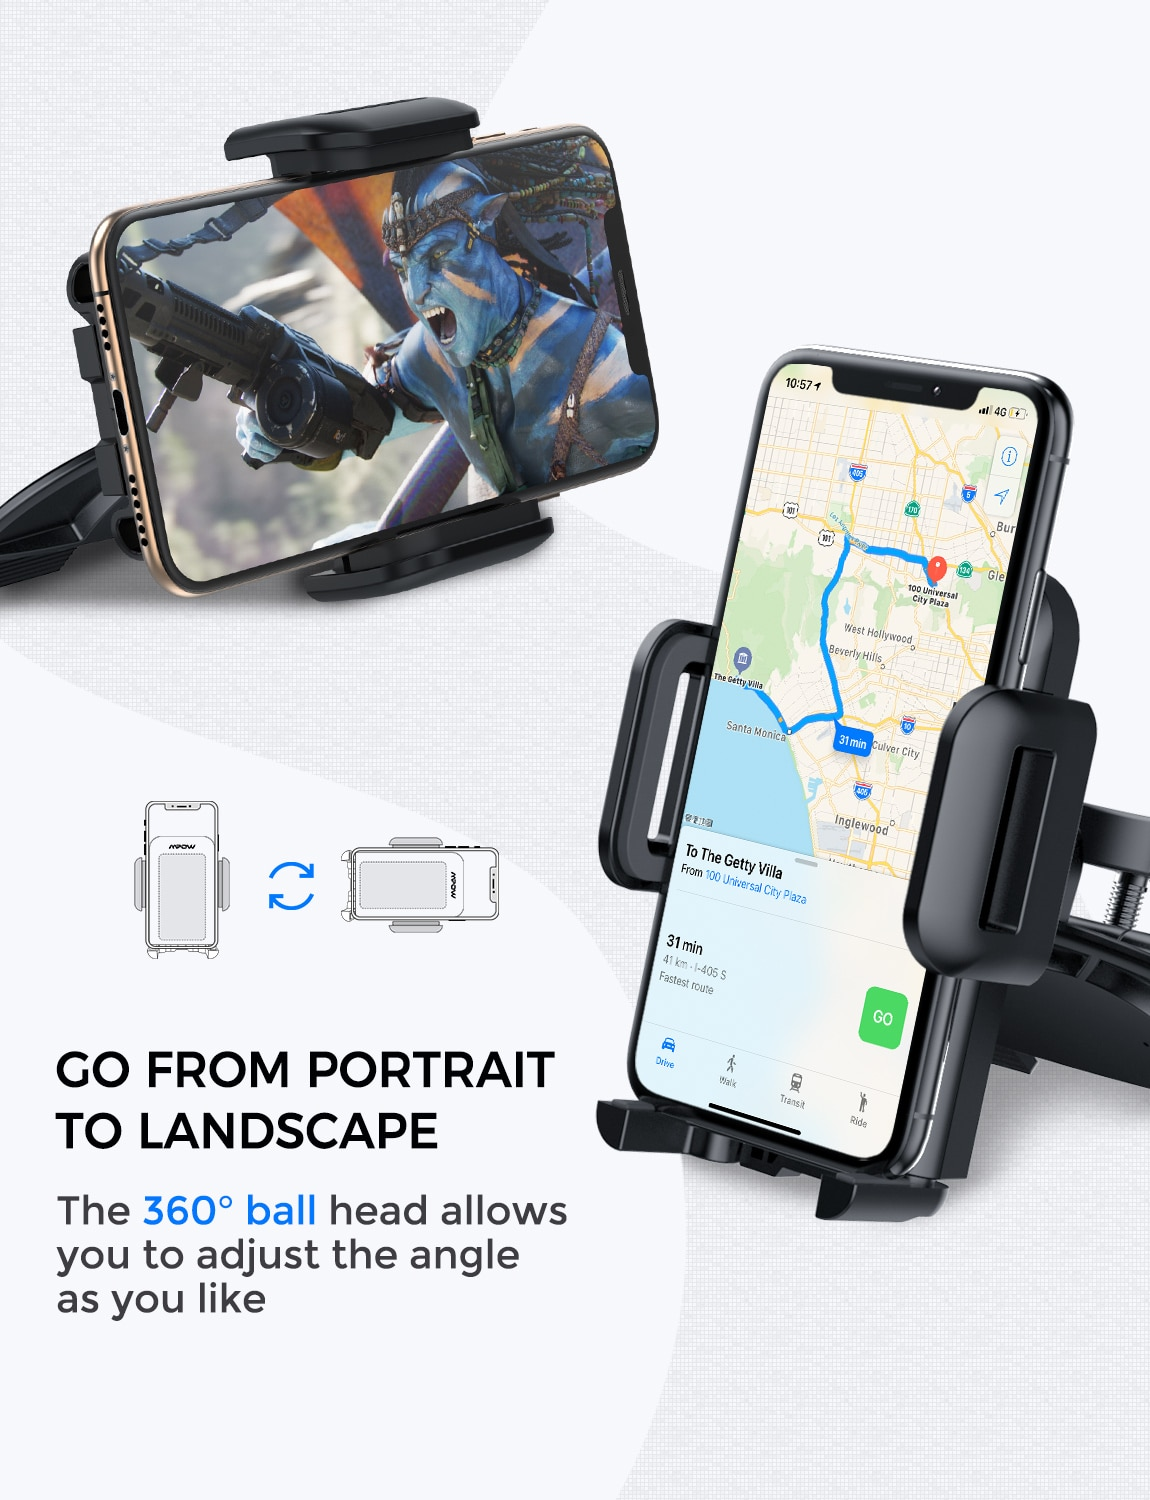 H2b6d41343b3e4b1d96cccab5bd999eddH - Mpow 051 Car Phone Holder CD Slot Car Phone Mount with Three-Side Grip and One-Touch Design for iPhone 12/12Mini/12Pro/12Pro Max